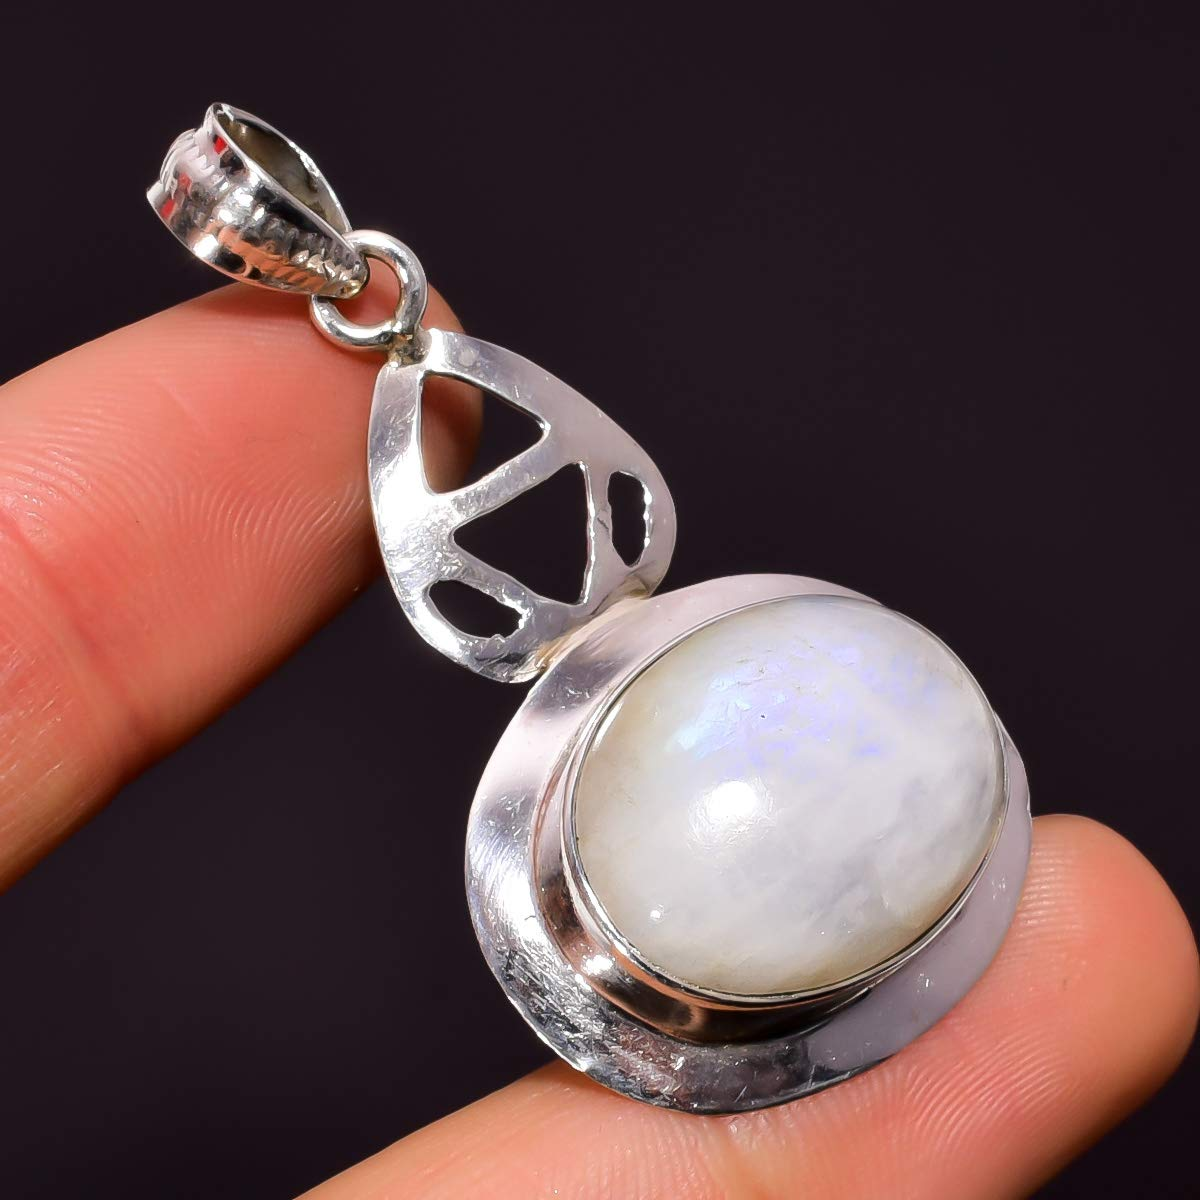 Mughal Gems /& Jewellery 925 Sterling Silver Pendant Natural Rainbow Moonstone Oval Gemstone Ethnic Style Handmade Jewelry for Women /& Girls Pendant 1.9 ZP-102